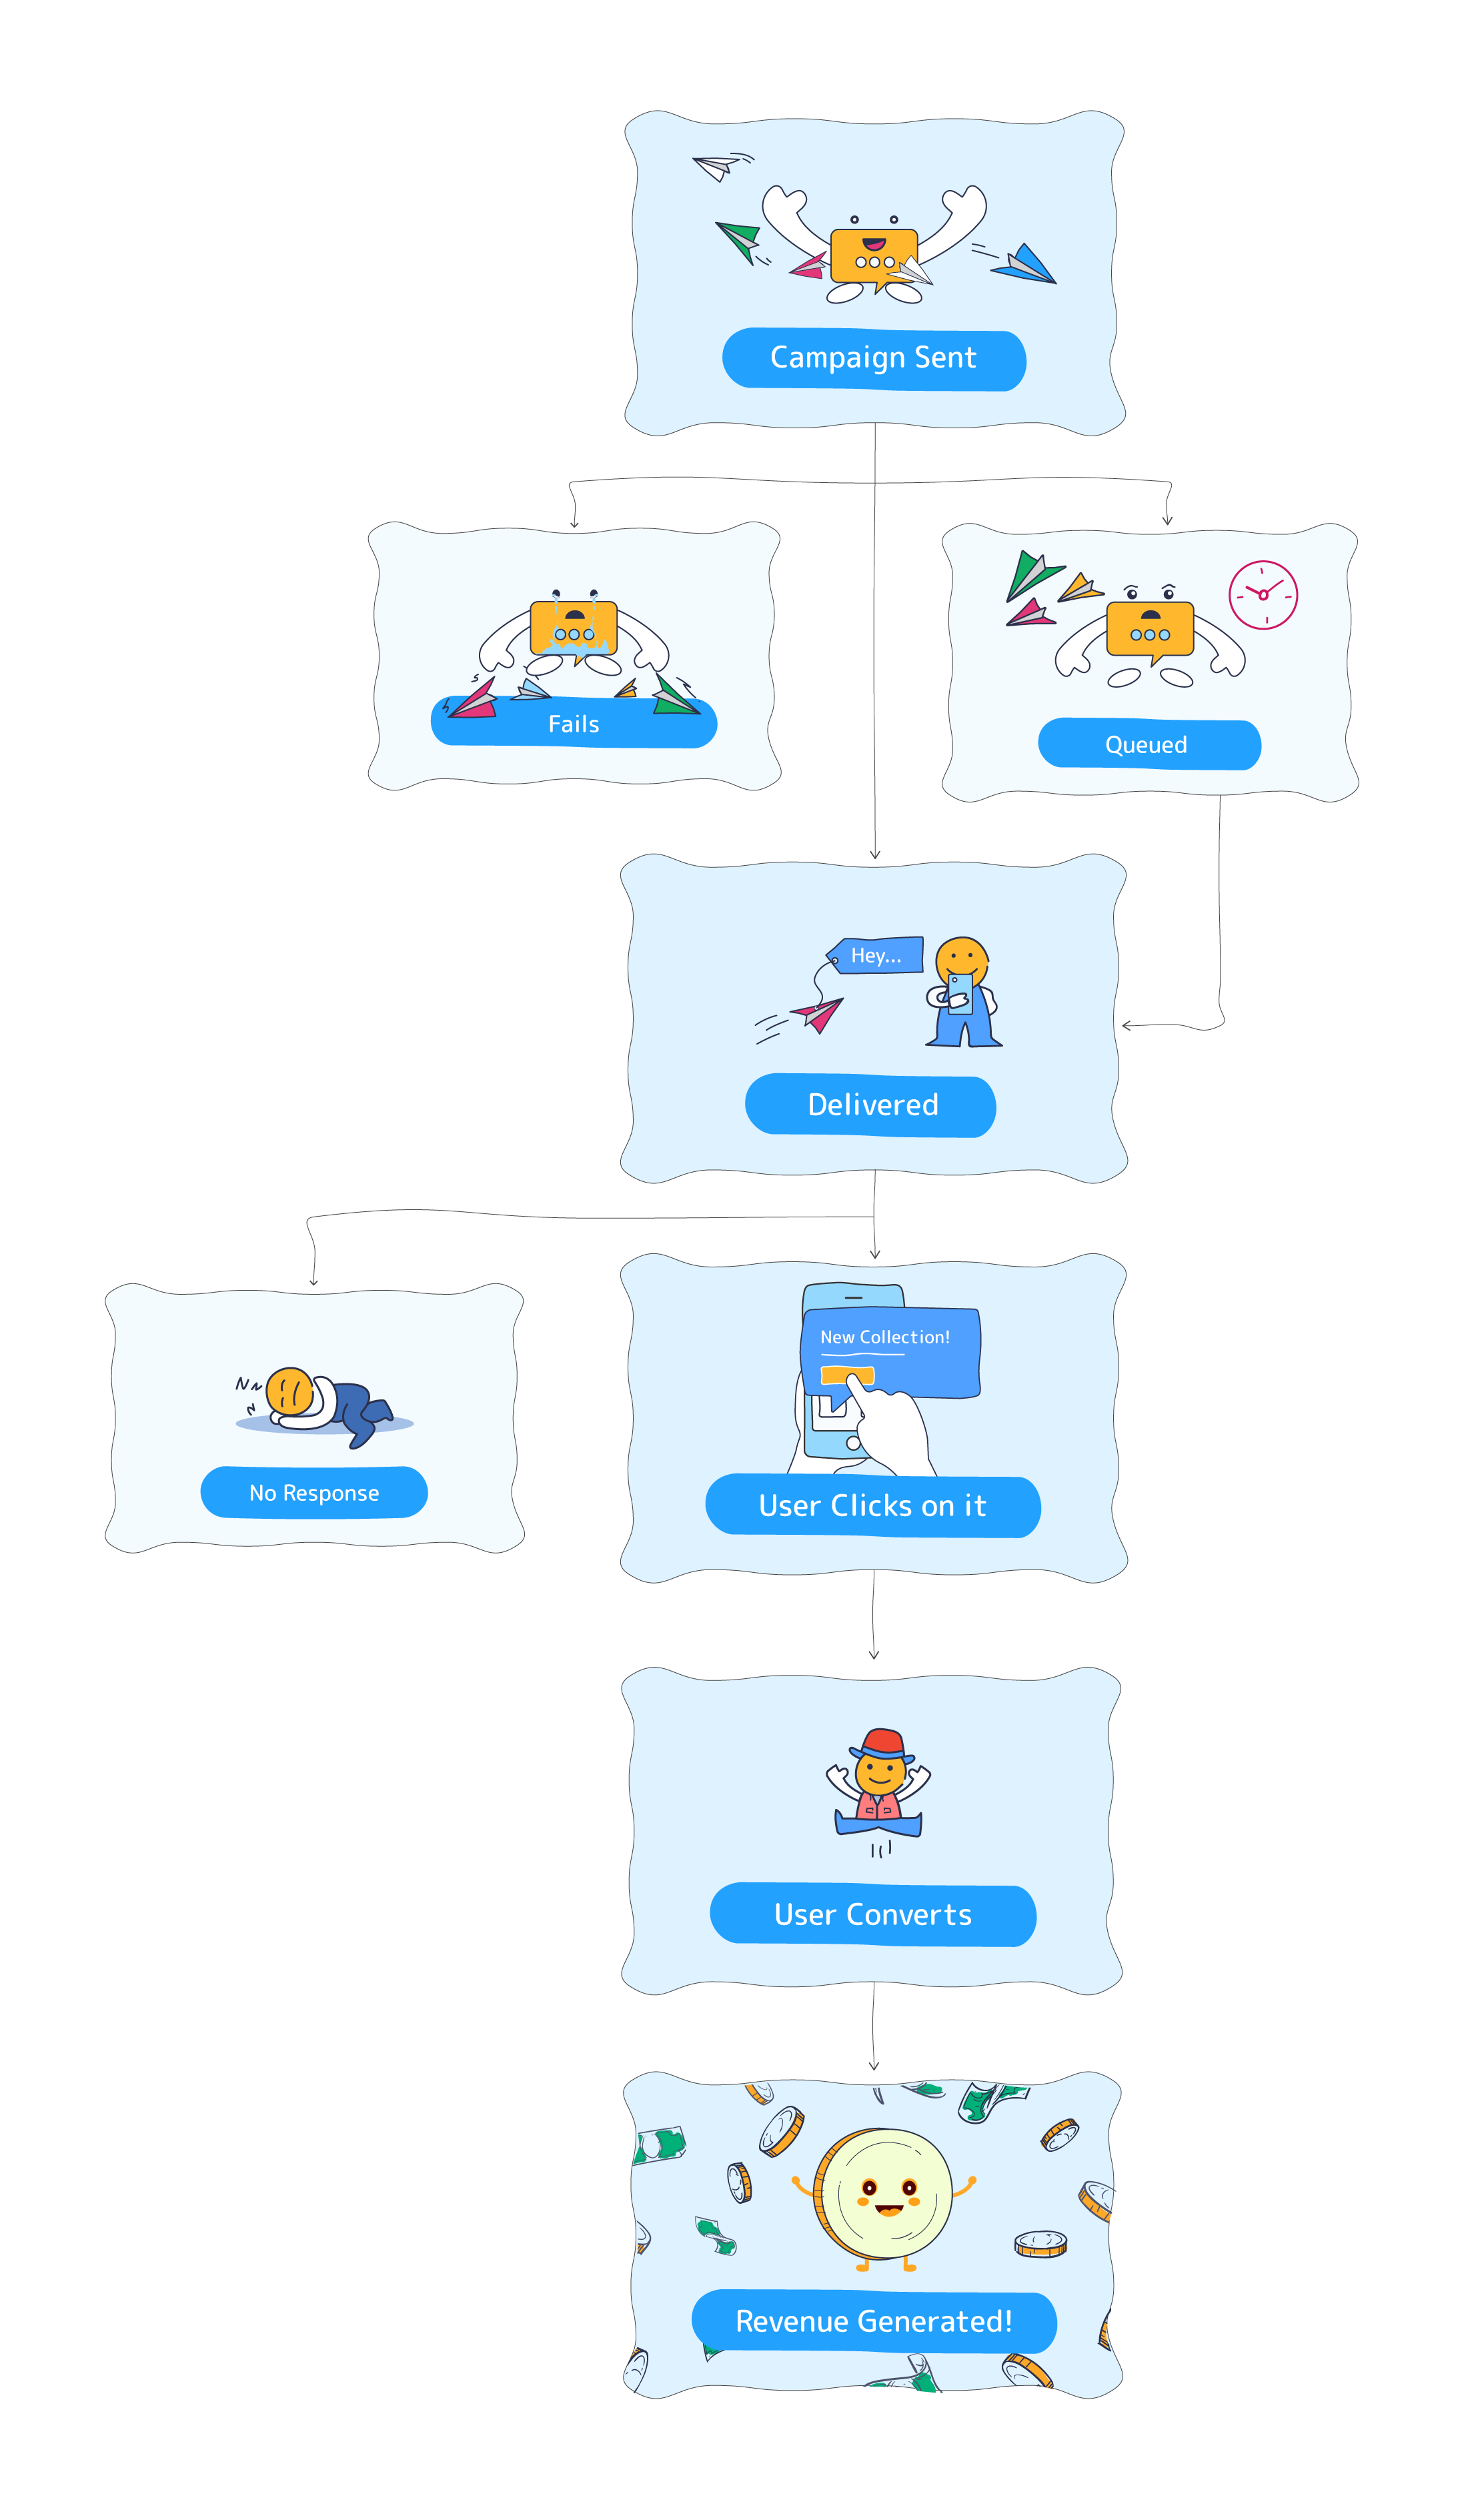 The lifecycle of an SMS campaign